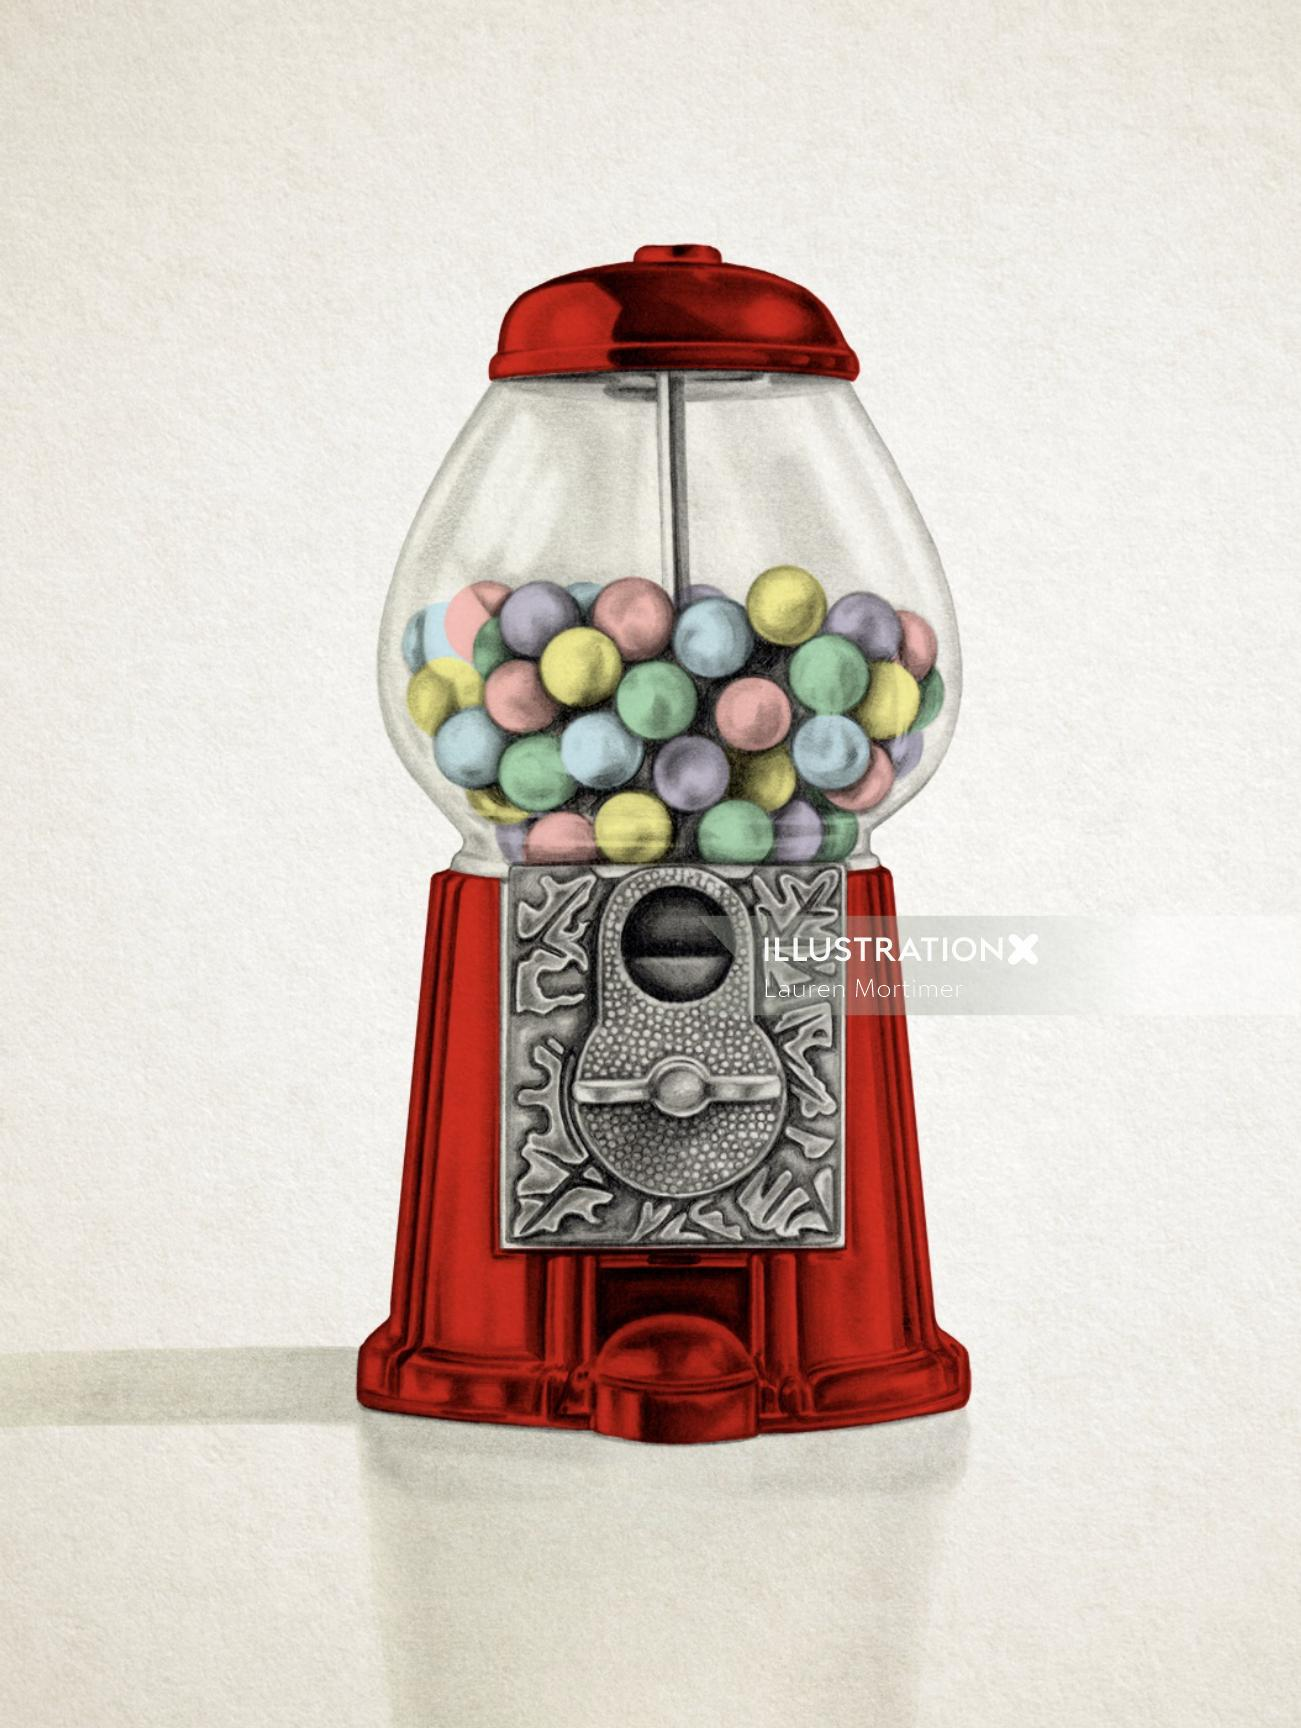 Photo realistic of Gumball Machine